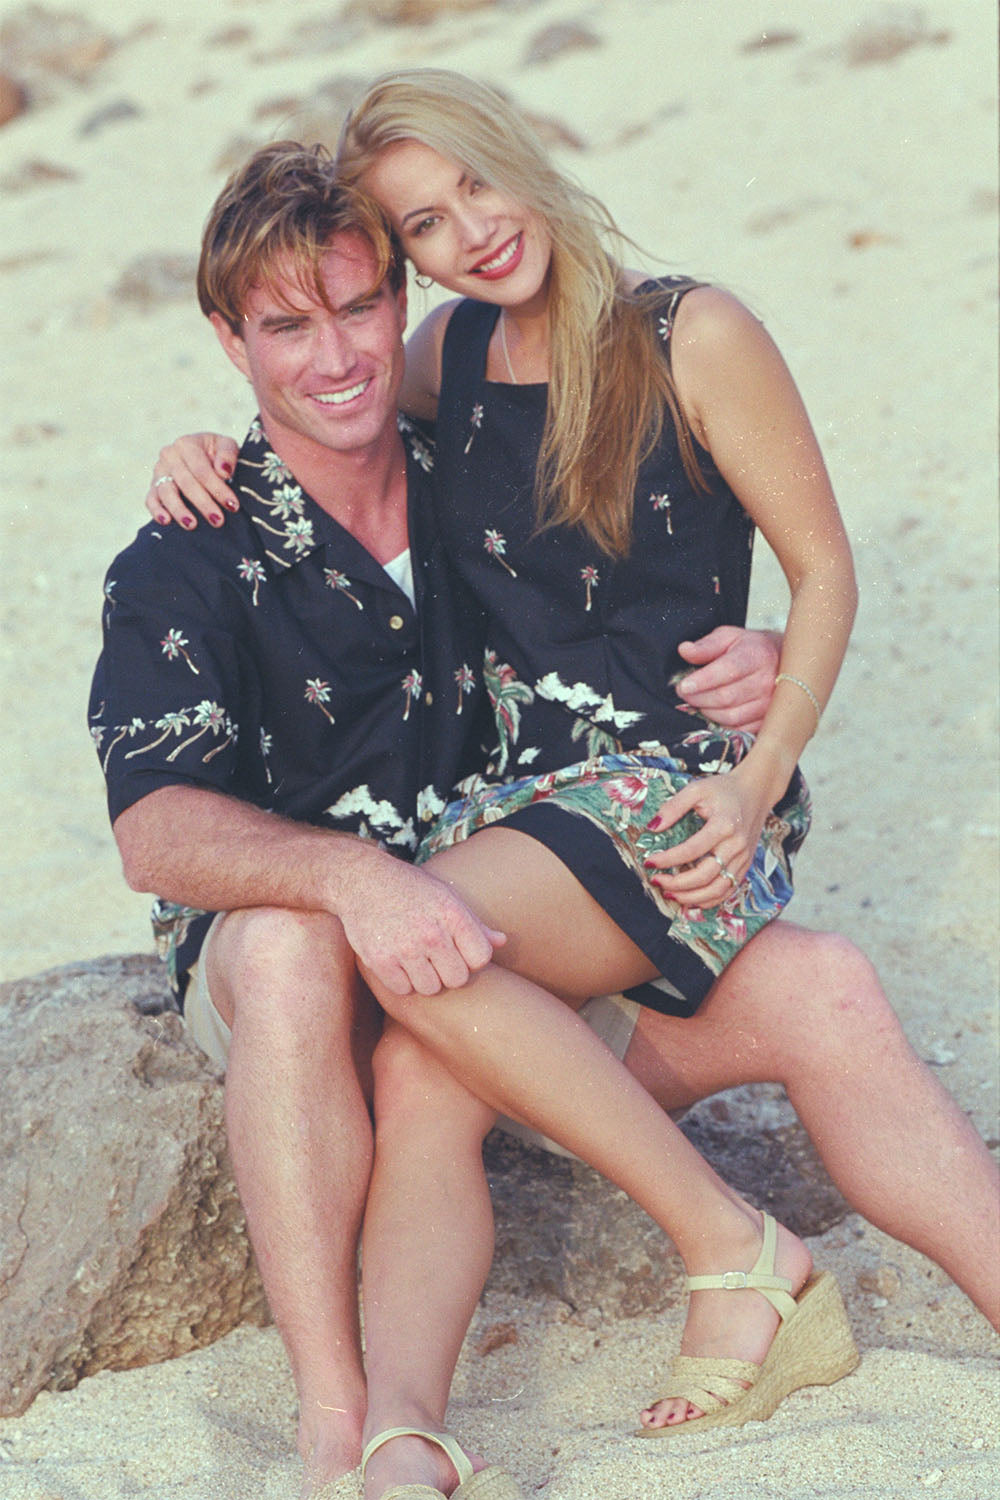 Jason and Angel in matching black Hawaiian shirt and dress